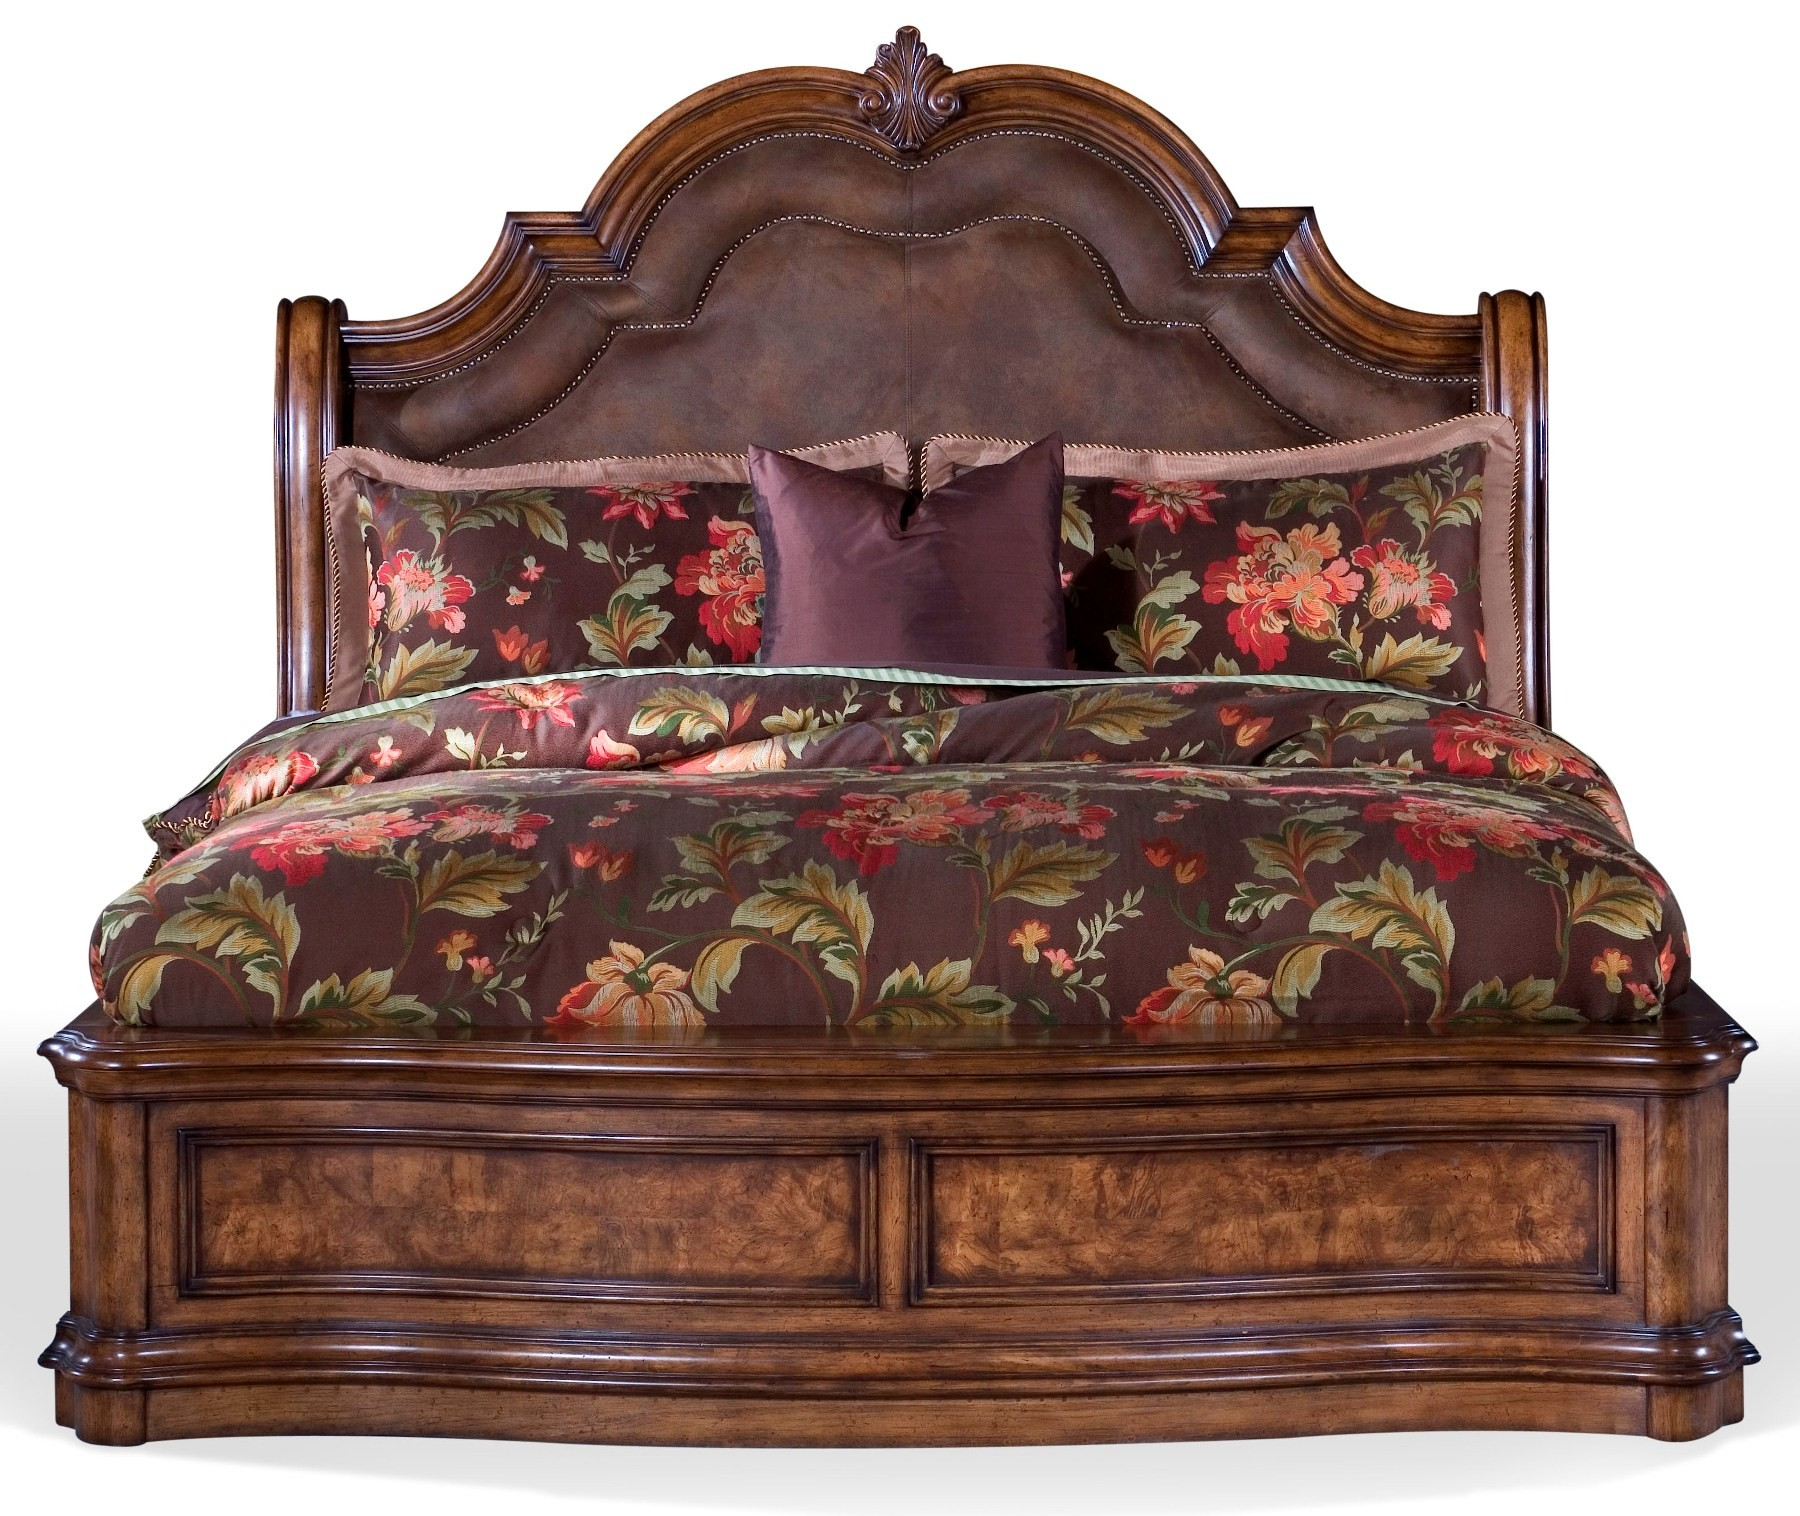 San mateo king sleigh bed from pulaski 662180 662181 - King size sleigh bed bedroom set ...